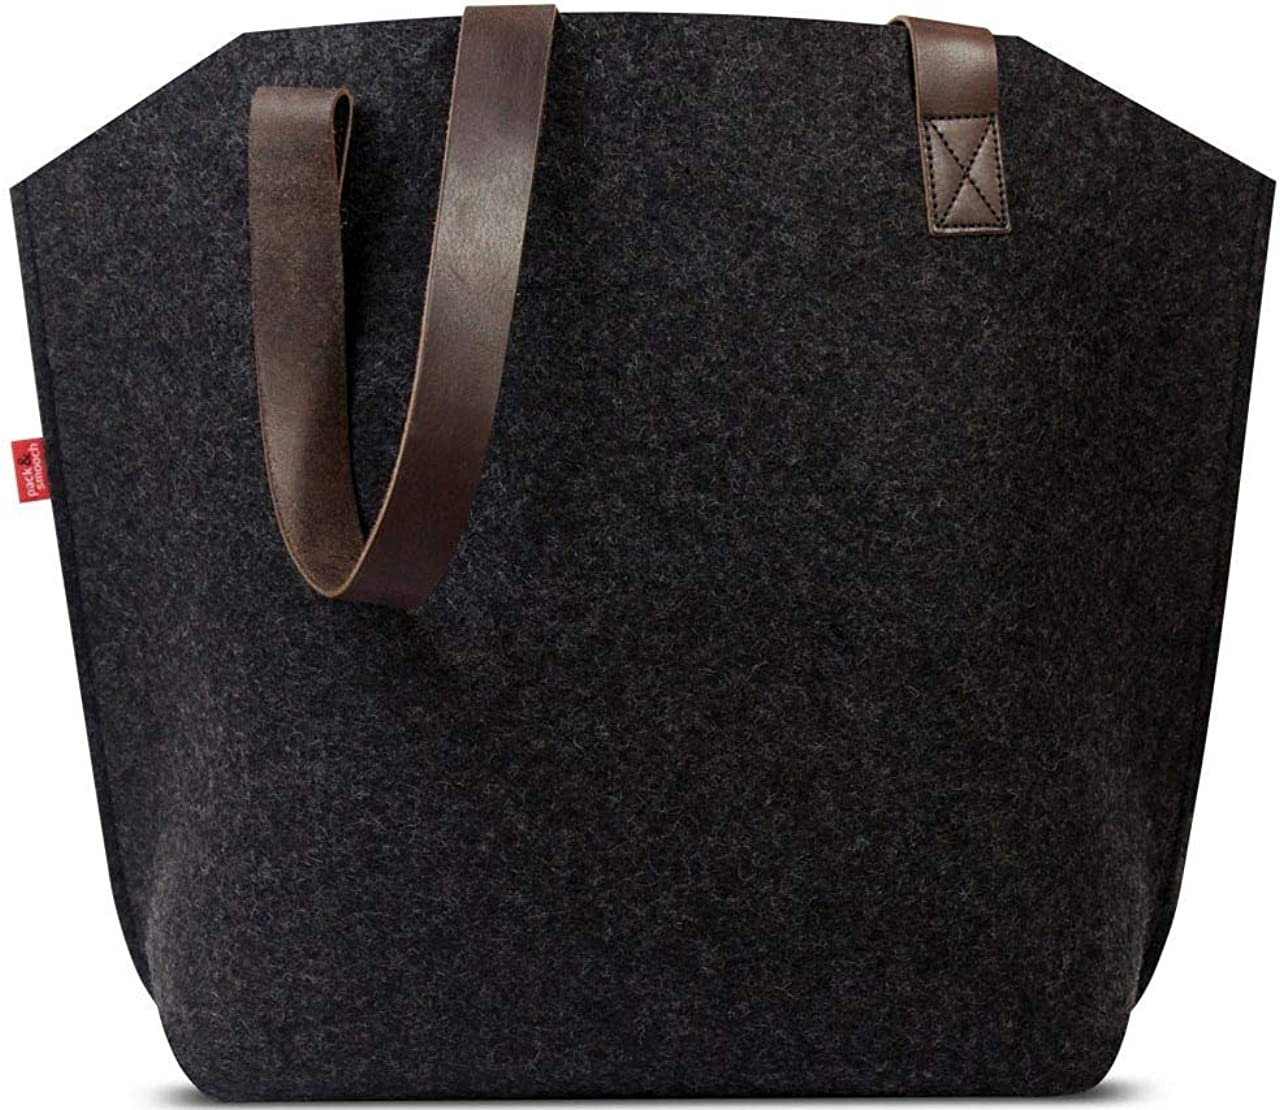 Pack Smooch York 100 Merino Wool Felt Tote Bag with Vegetable Tanned Italian Leather Strap